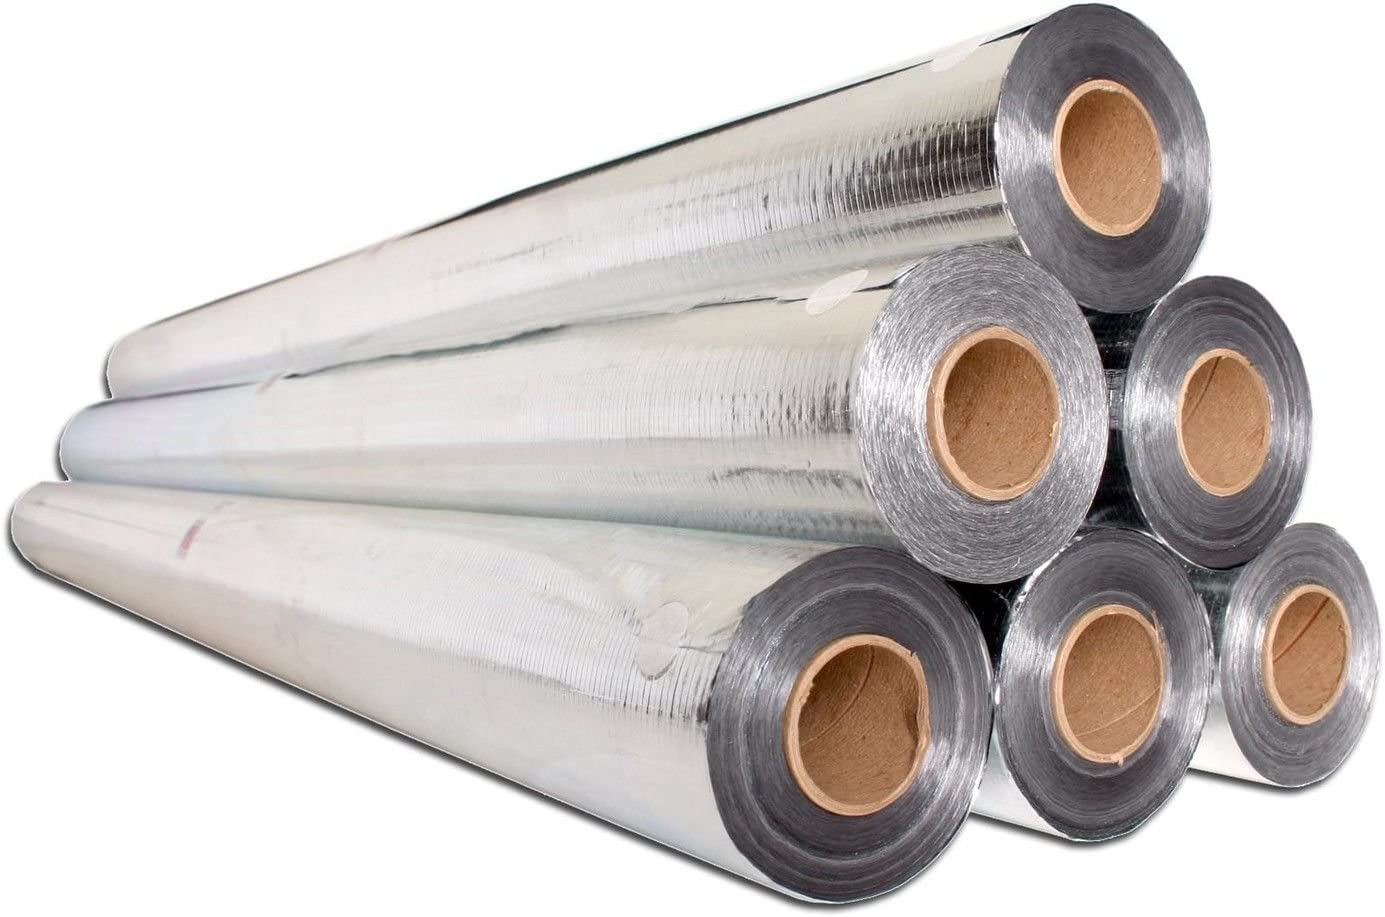 US Energy Products 4'x50' Radiant Barrier Solar Attic Foil Reflective Insulation Weatherization 48' x 50'